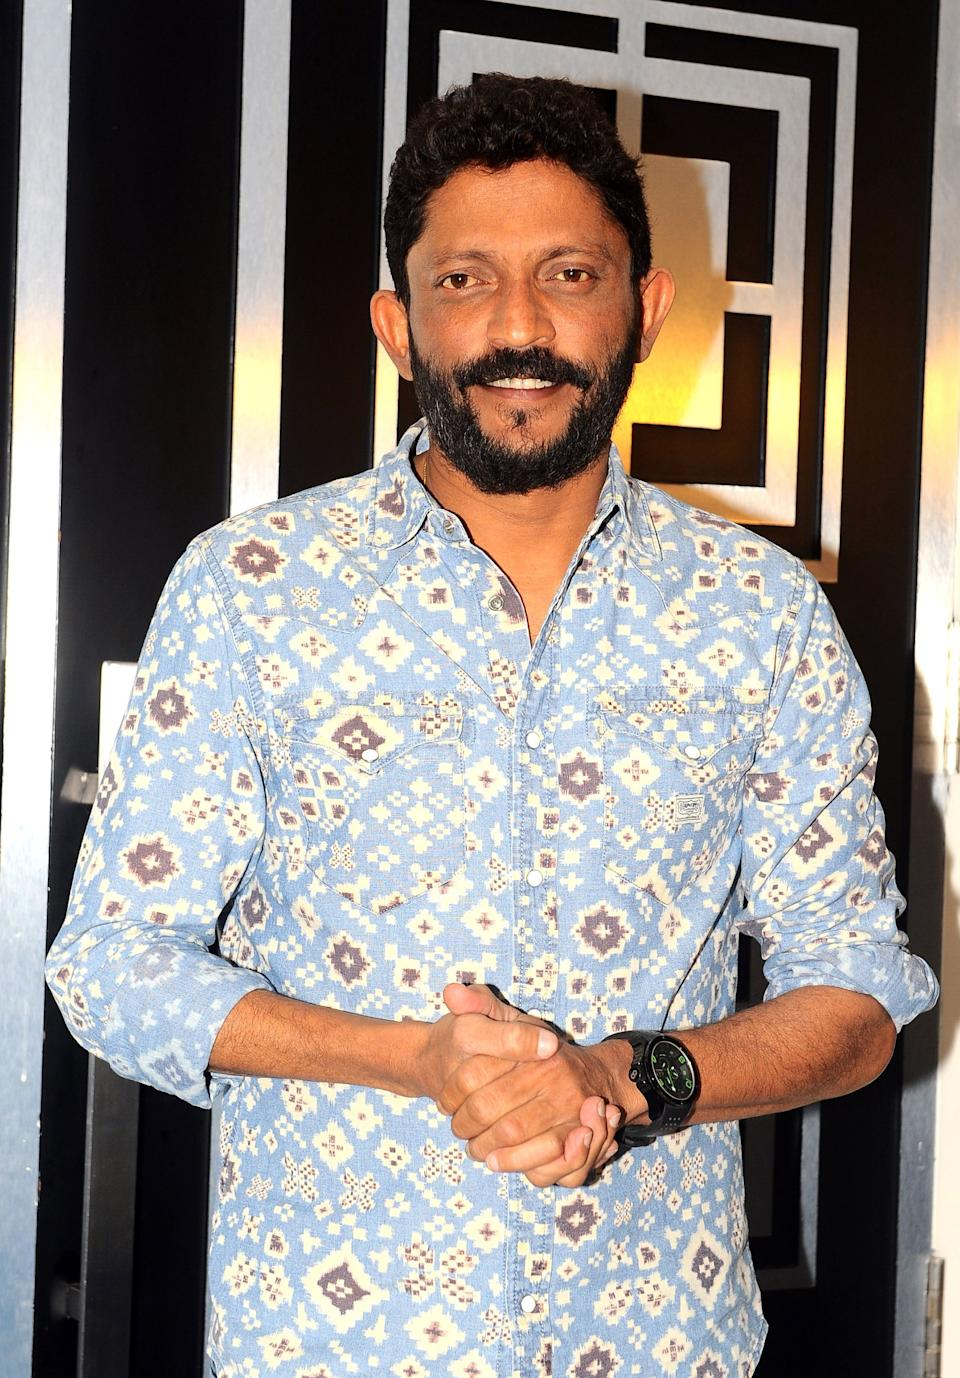 Filmmaker Nishikant Kamat passed away of liver cirrhosis at the age of 50 on August 18th, this year. The director, who is known for directing the Hindi remake of the Malayalam film Drishyam, had been undergoing treatment for chronic liver disease in Hyderabad. <br>Apart from helming Hindi films such as Force and Madaari, Kamat was also prominent in the Marathi film industry with his debut film, Dombivali Fast, earning him accolades.